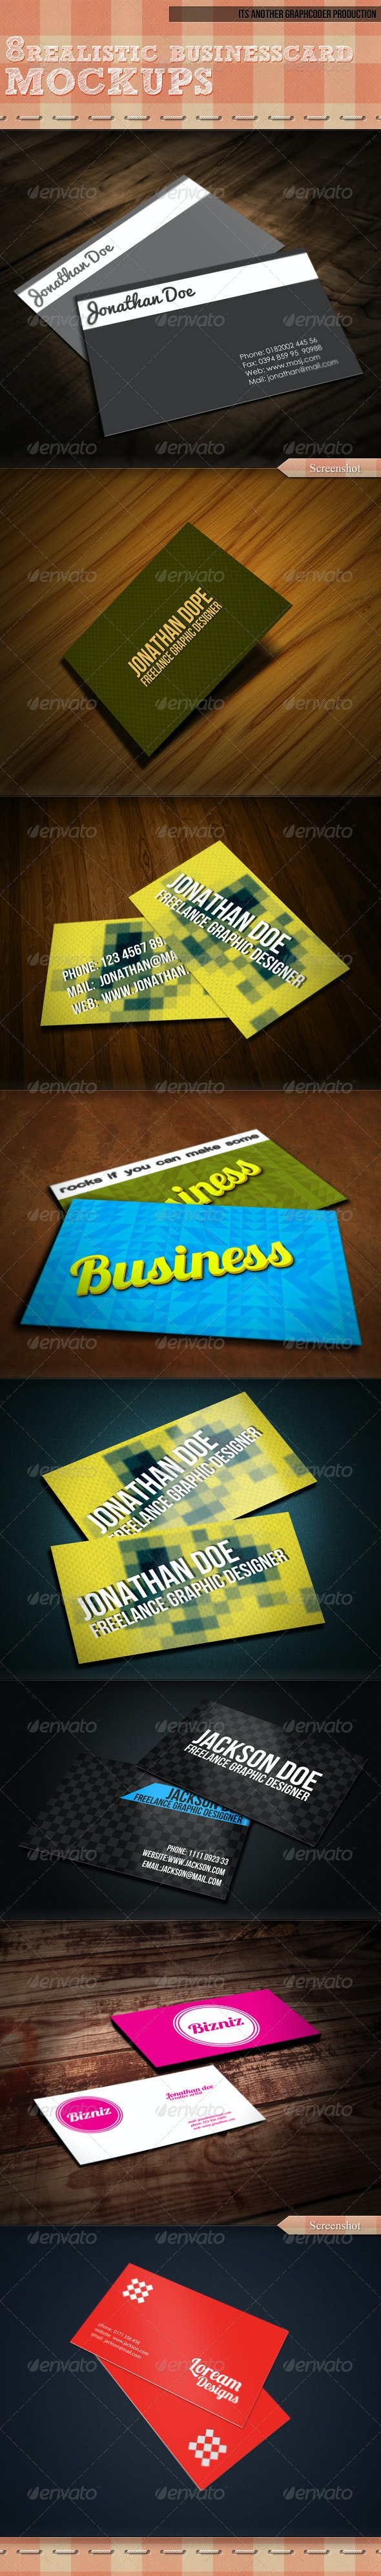 8 Realistic Business Card Mock-up - Business Cards Print